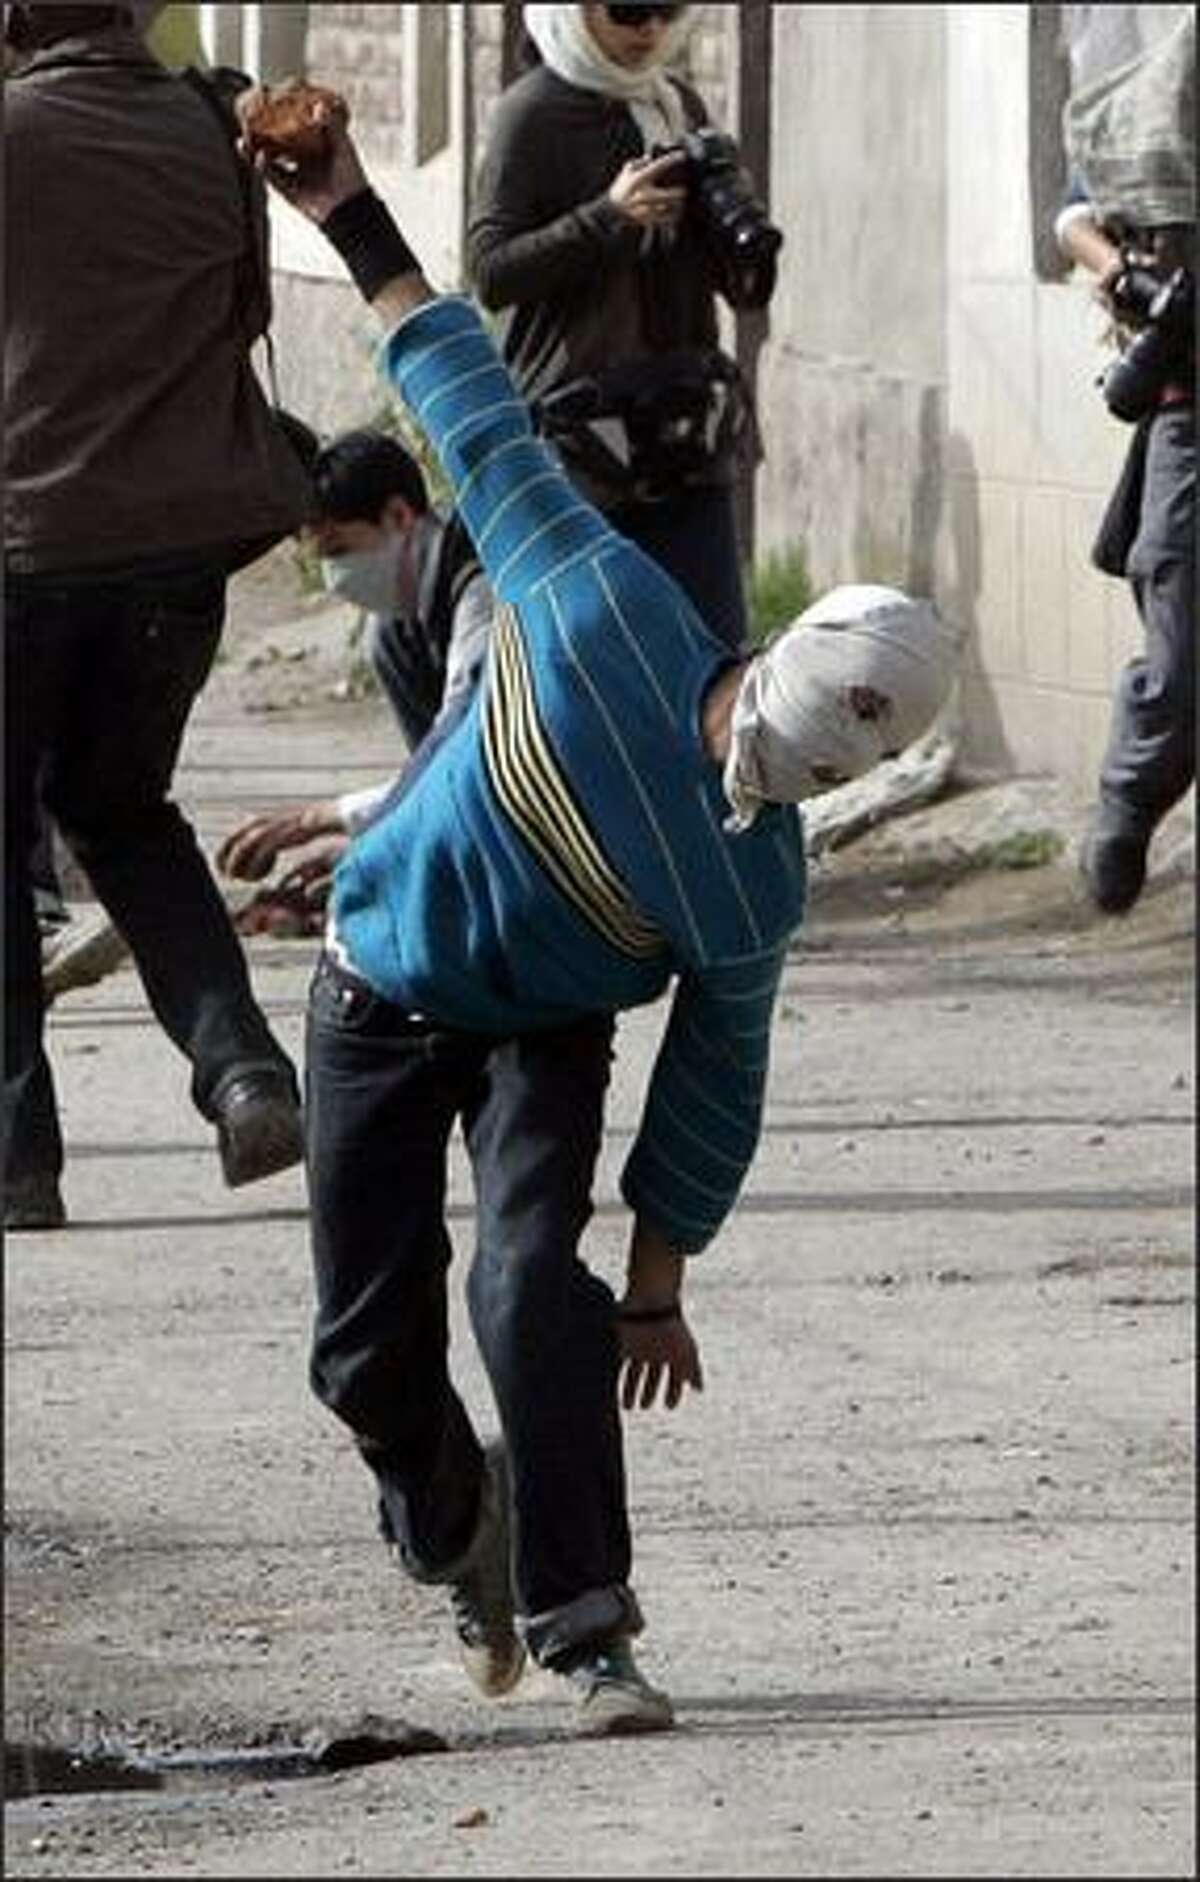 A protester throws a stone toward Indian policemen during an anti-election protest in Srinagar. Kashmir's separatist leaders are struggling to win back popular support, and are hoping that a boycott of Thursday's election to the Indian parliament may yet breathe new life into the 20-year movement. REUTERS/Danish Ismail